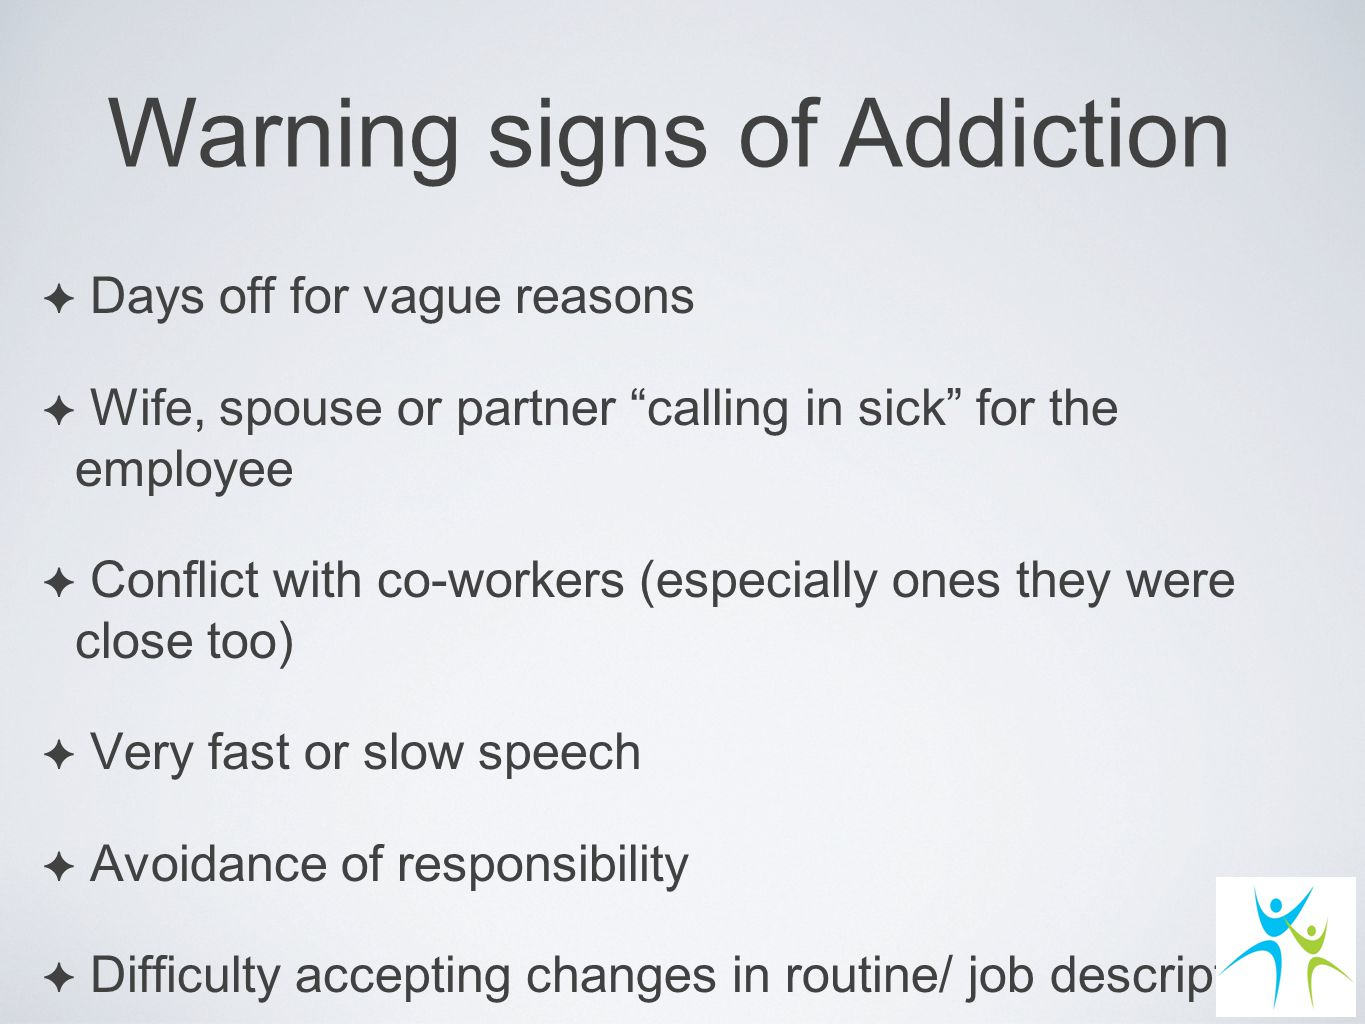 ✦ Days off for vague reasons ✦ Wife, spouse or partner calling in sick for the employee ✦ Conflict with co-workers (especially ones they were close too) ✦ Very fast or slow speech ✦ Avoidance of responsibility ✦ Difficulty accepting changes in routine/ job description Warning signs of Addiction